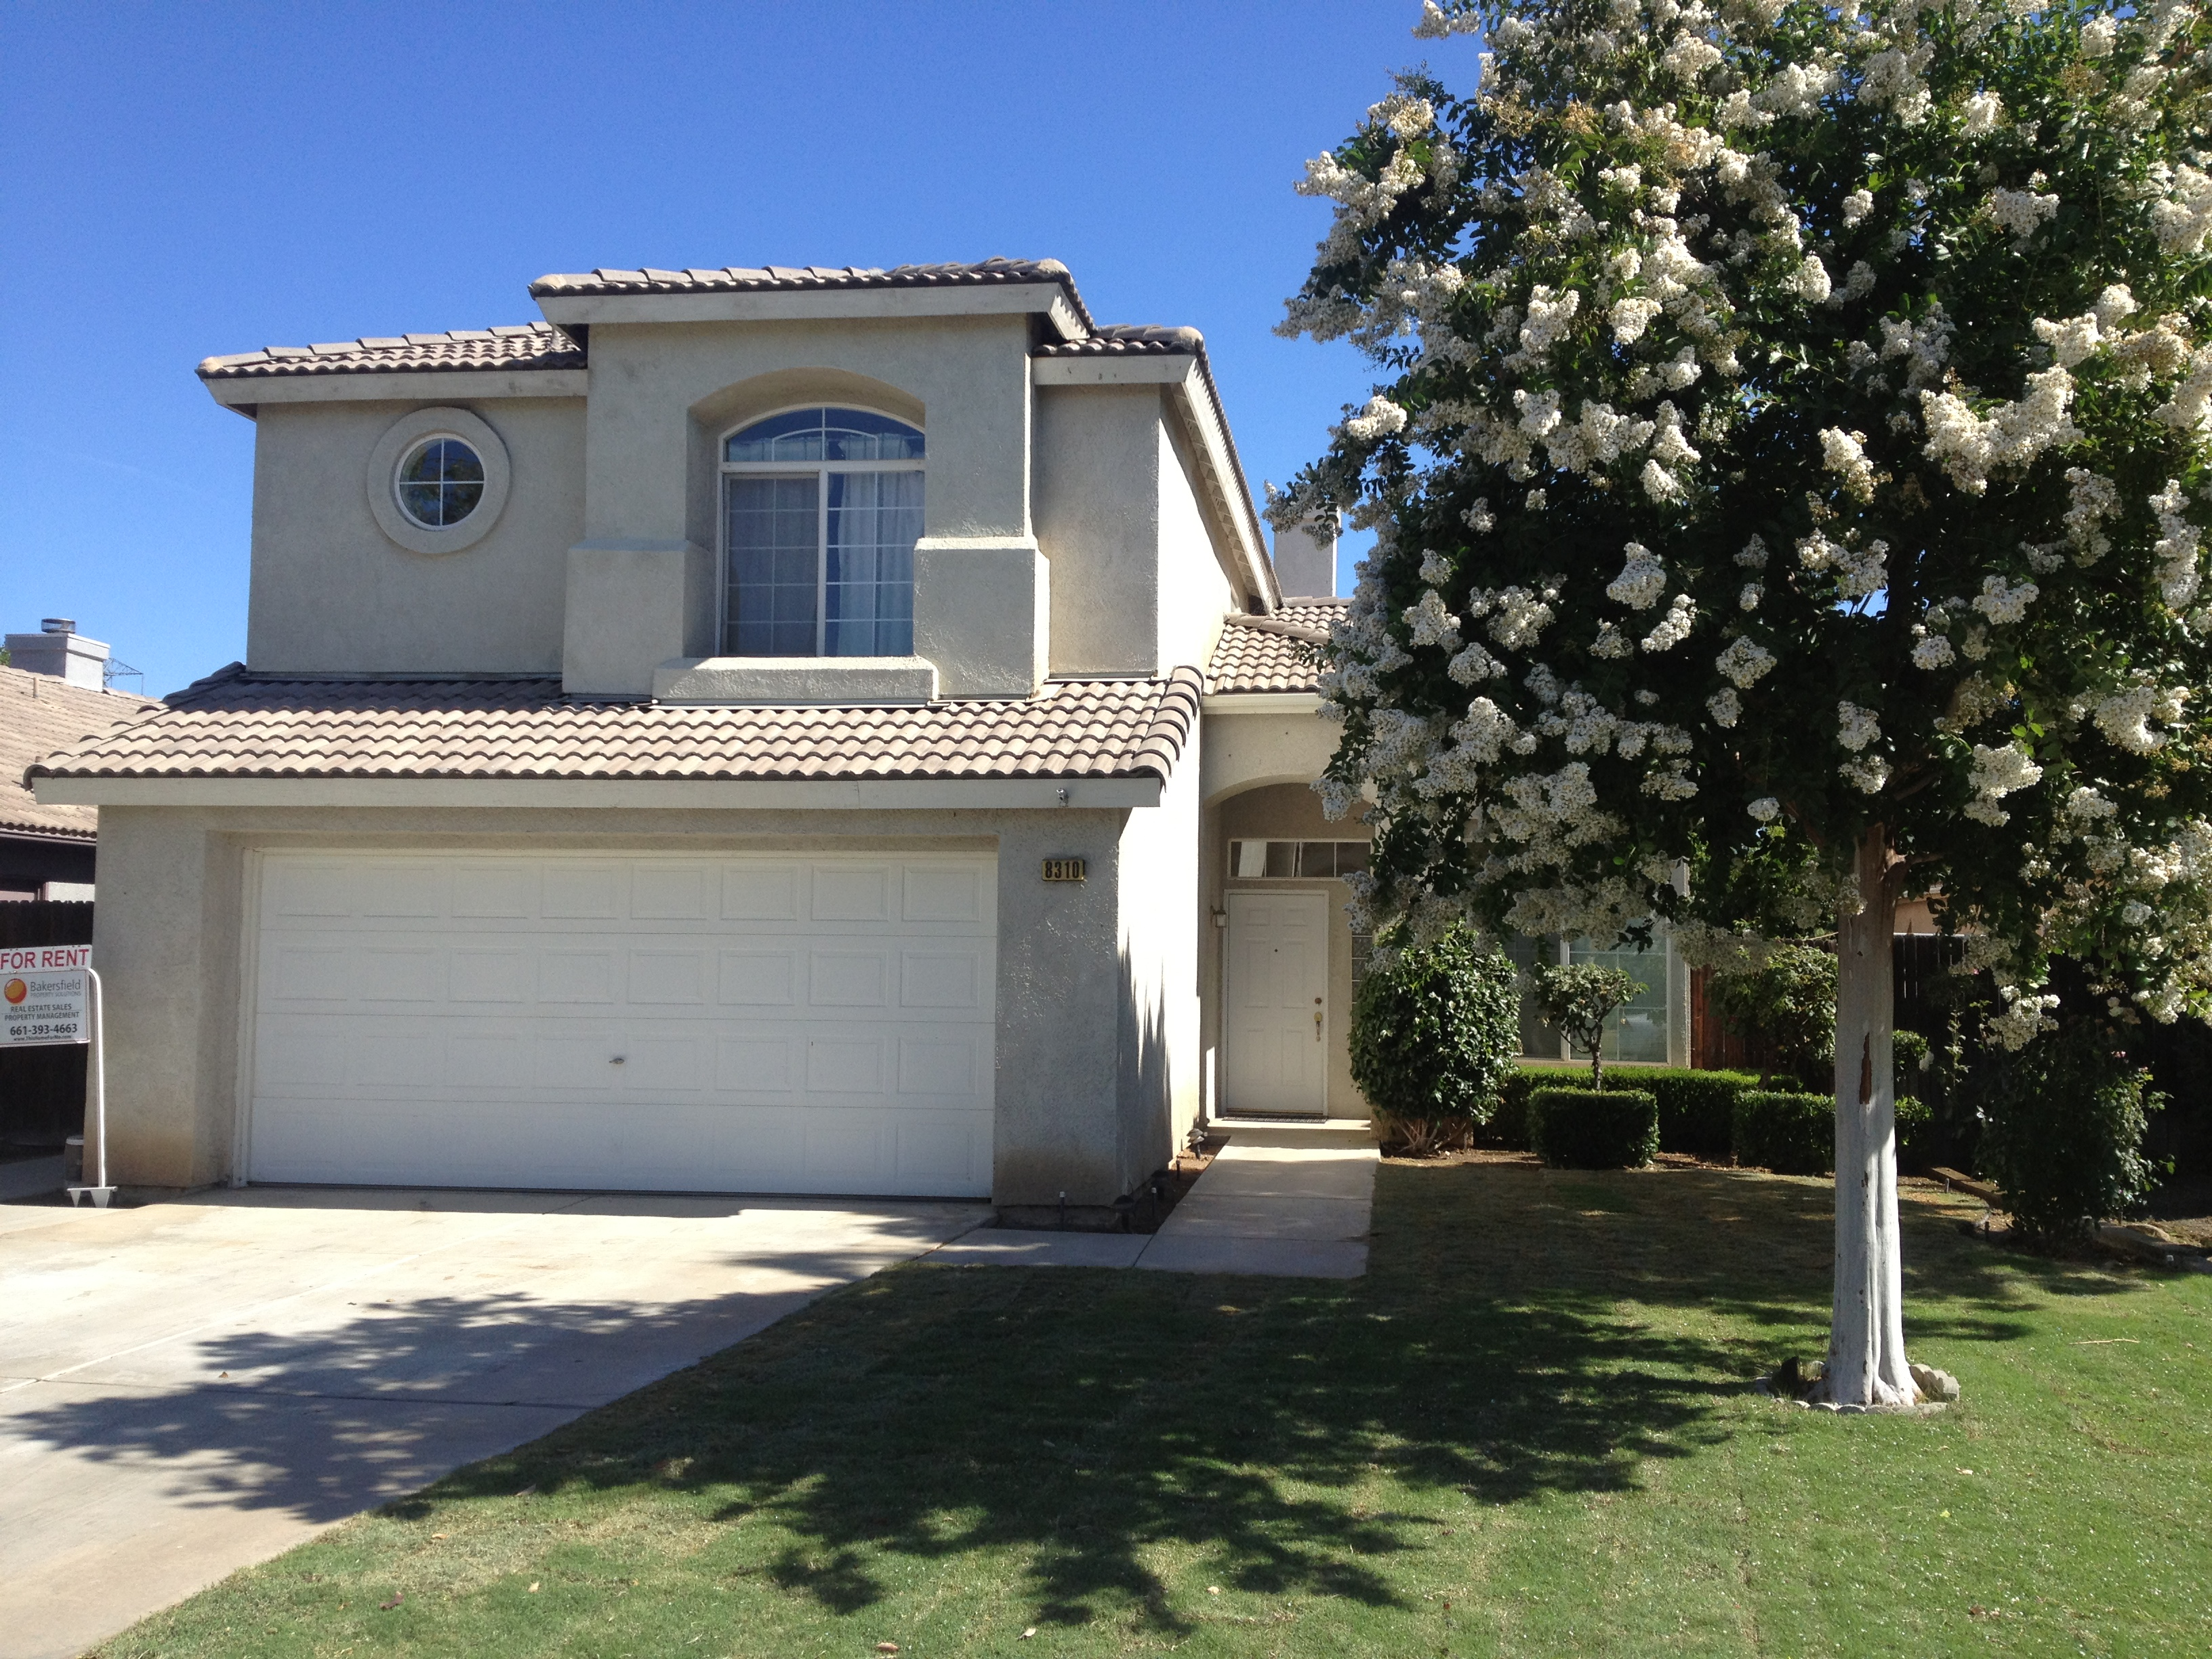 $1495 – 8310 Persimmon Dr., Bakersfield, CA 93311 southwest home for rent